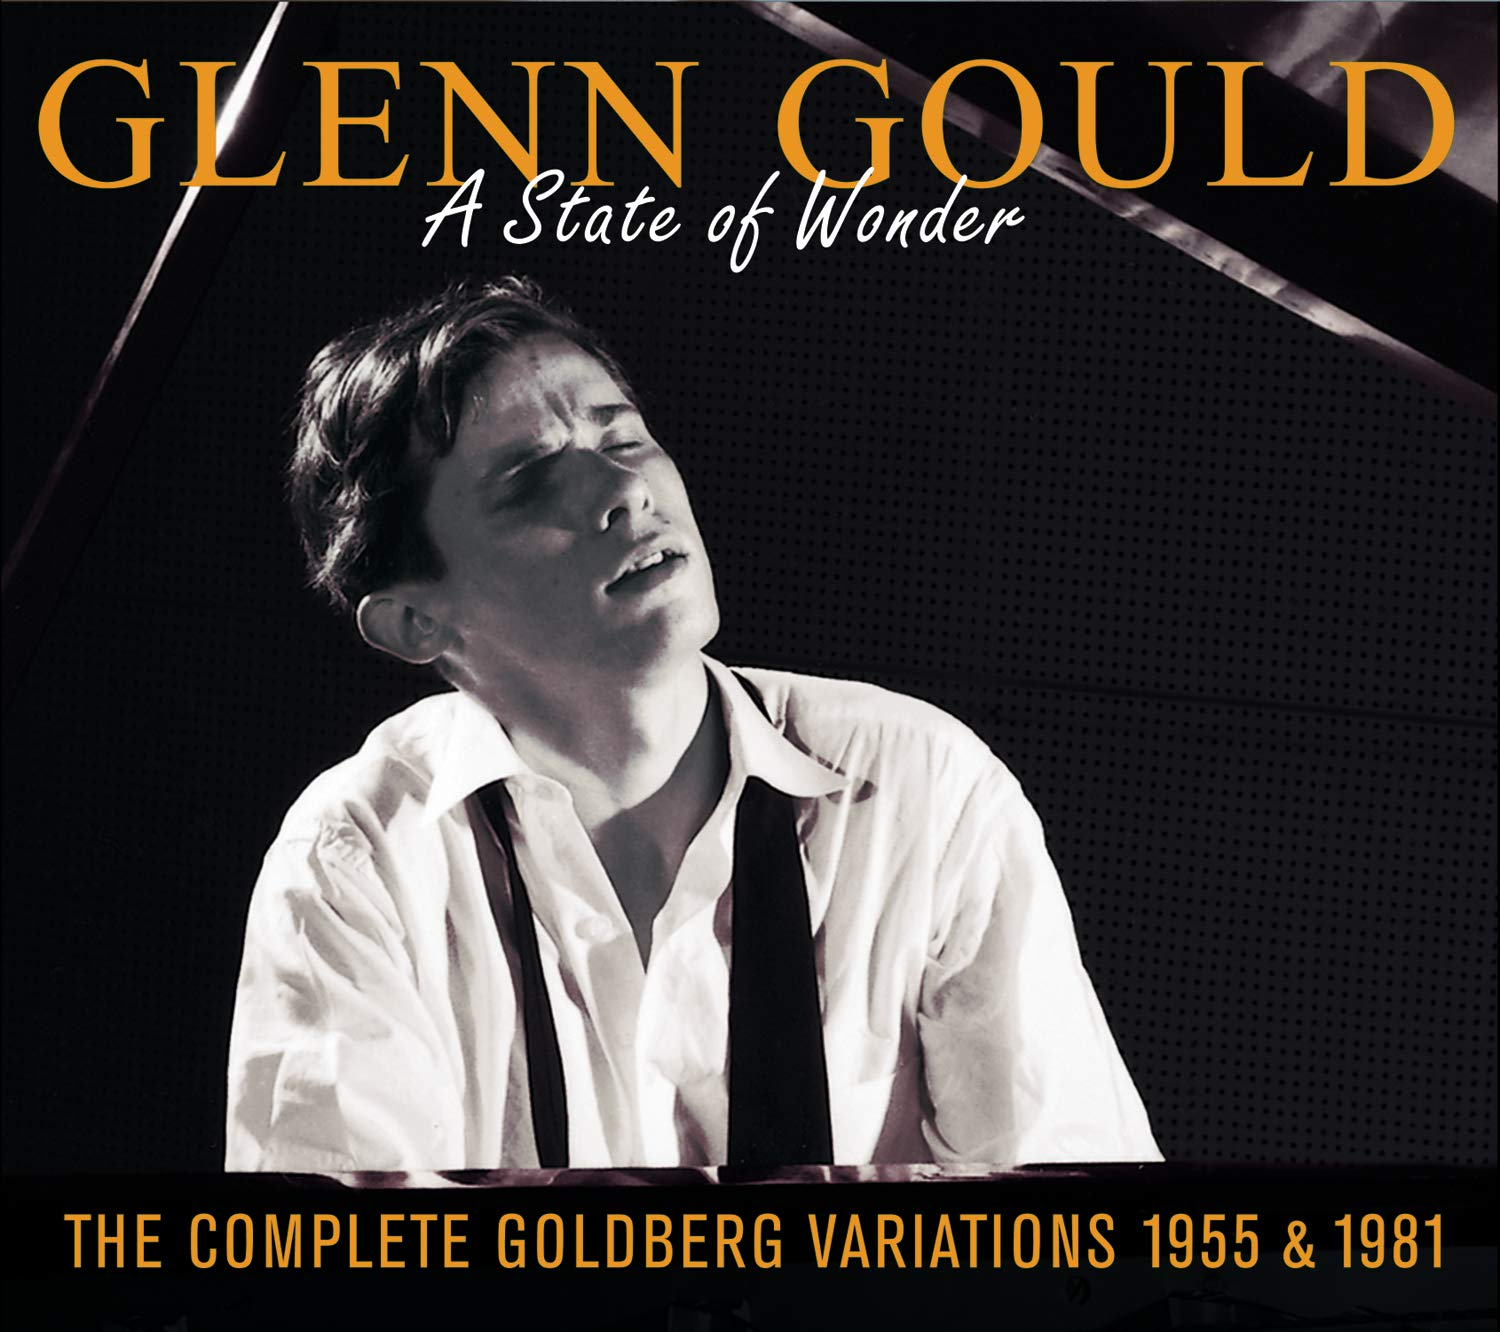 Glenn Gould: A State of Wonder - The Complete Goldberg Variations 1955 & 1981 by Masterworks